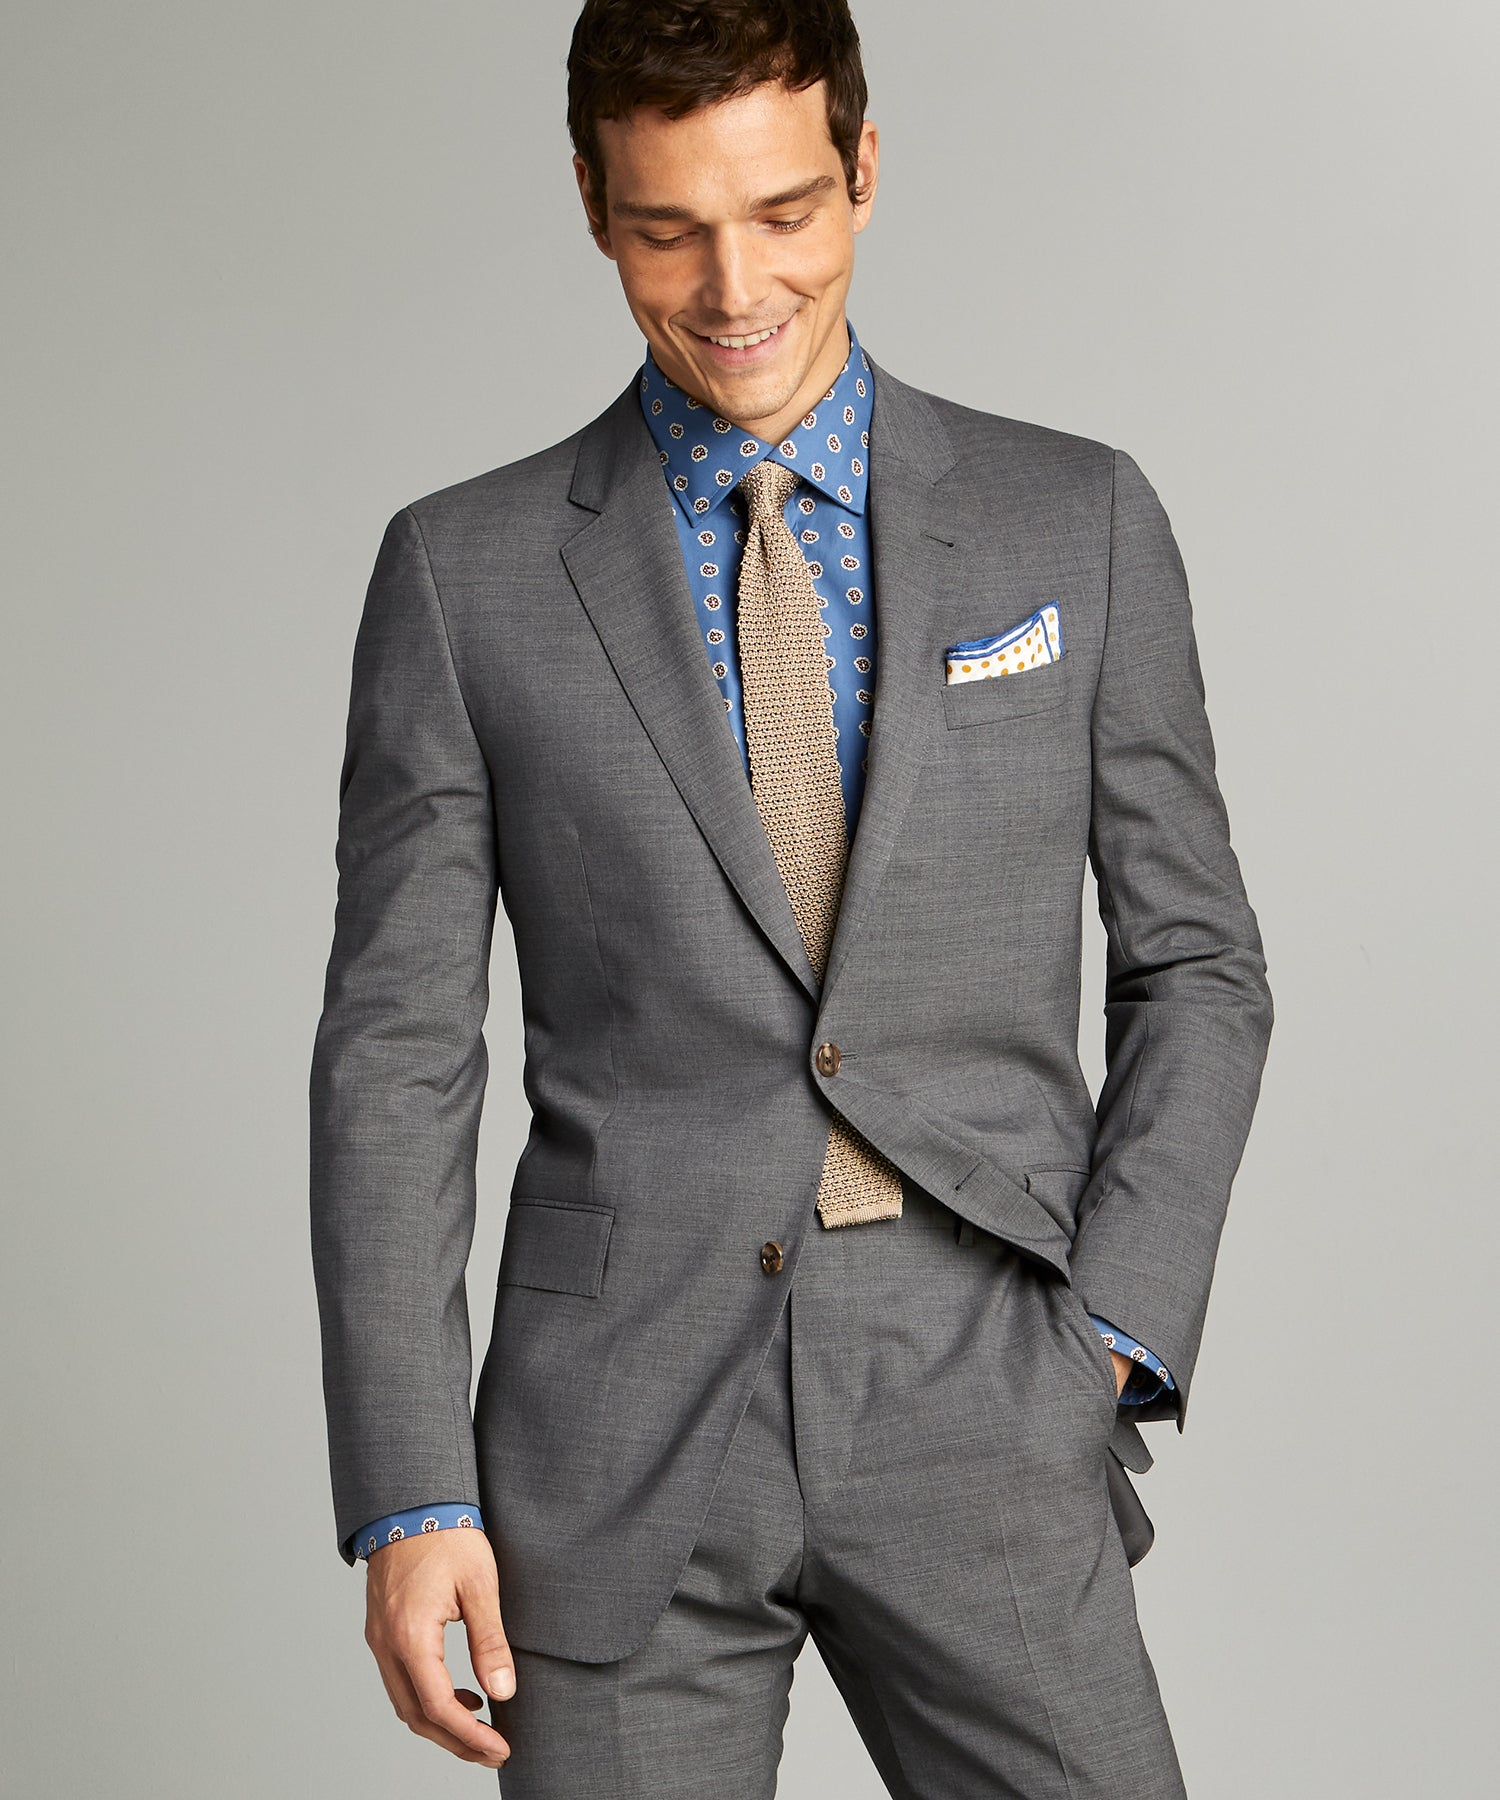 can groomsmen wear different suits